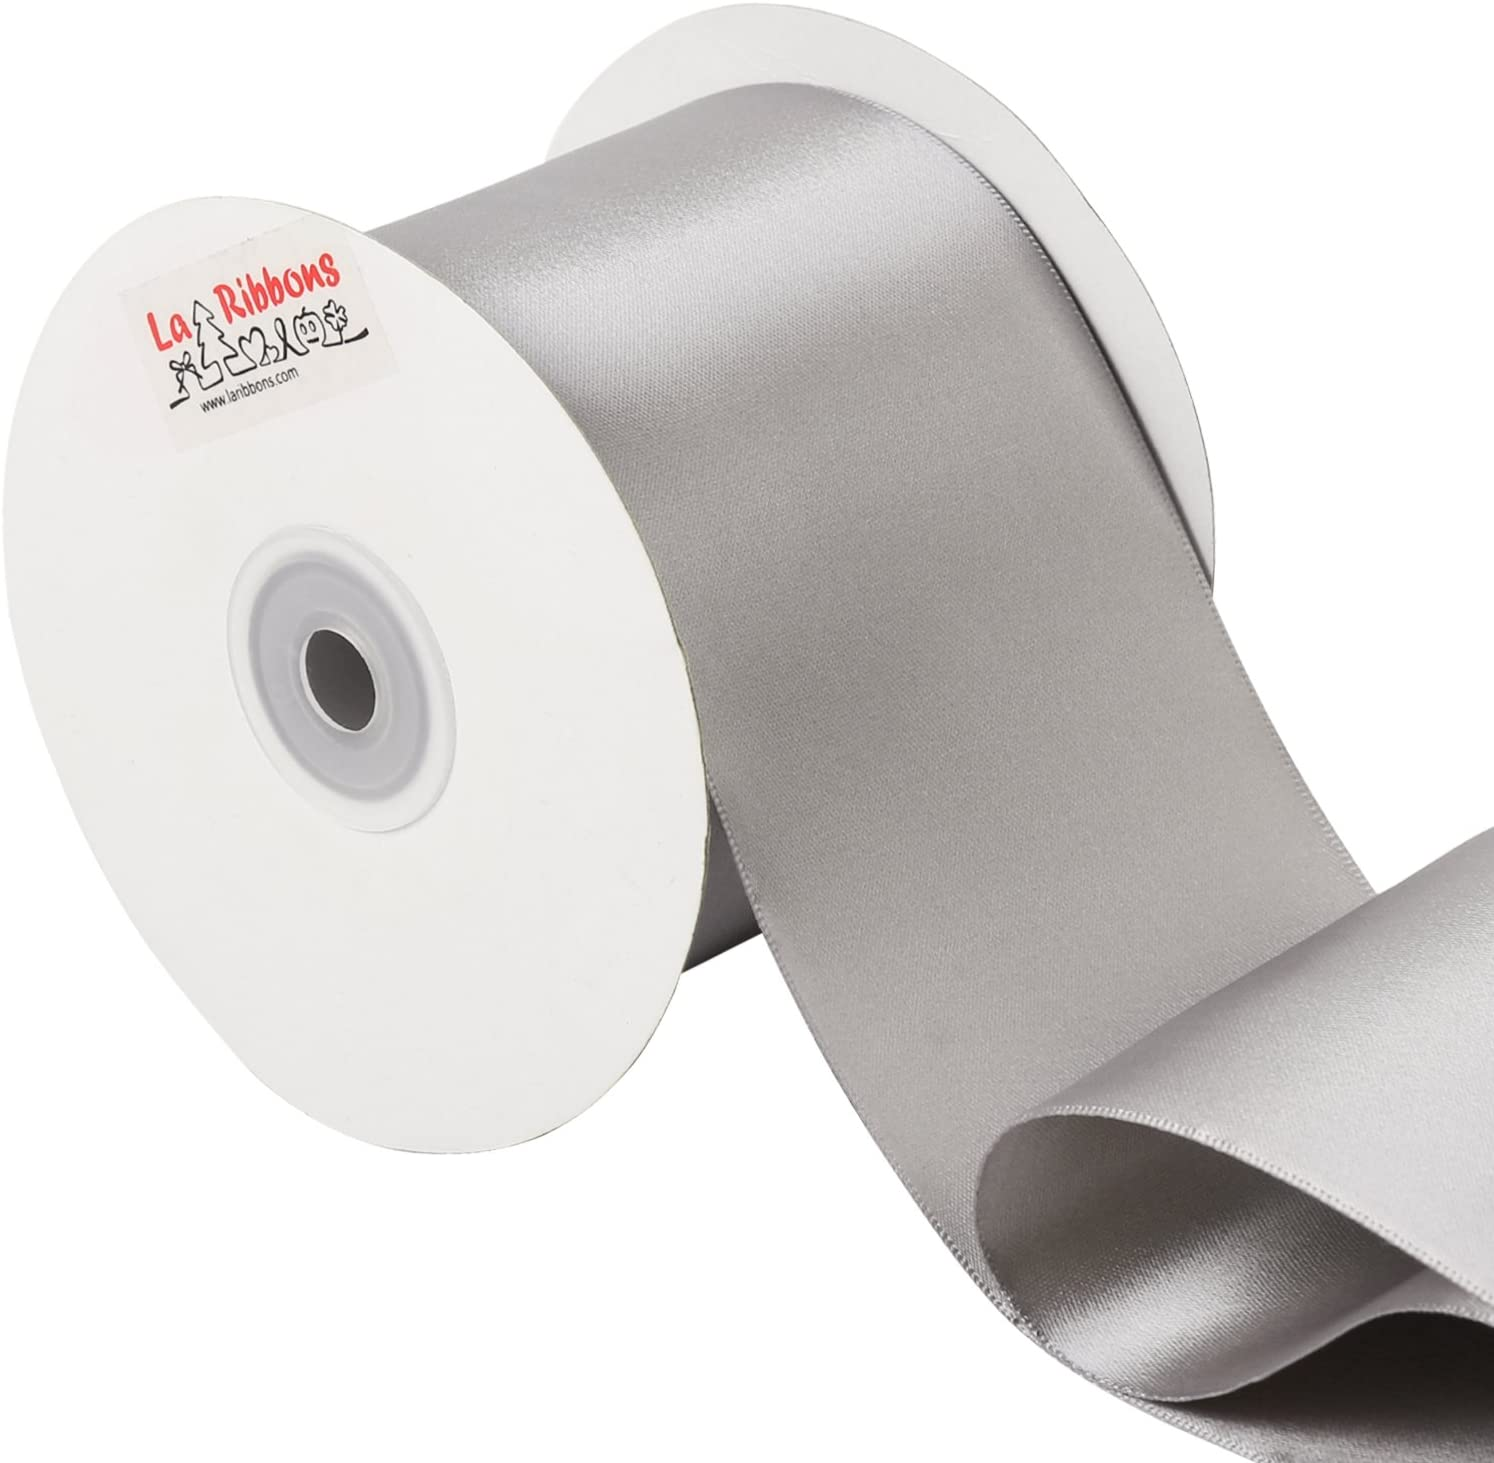 White LaRibbons 4 inch Wide Solid Color Double Face Satin Ribbon Great for Chair Sash 5 Yard//Spool